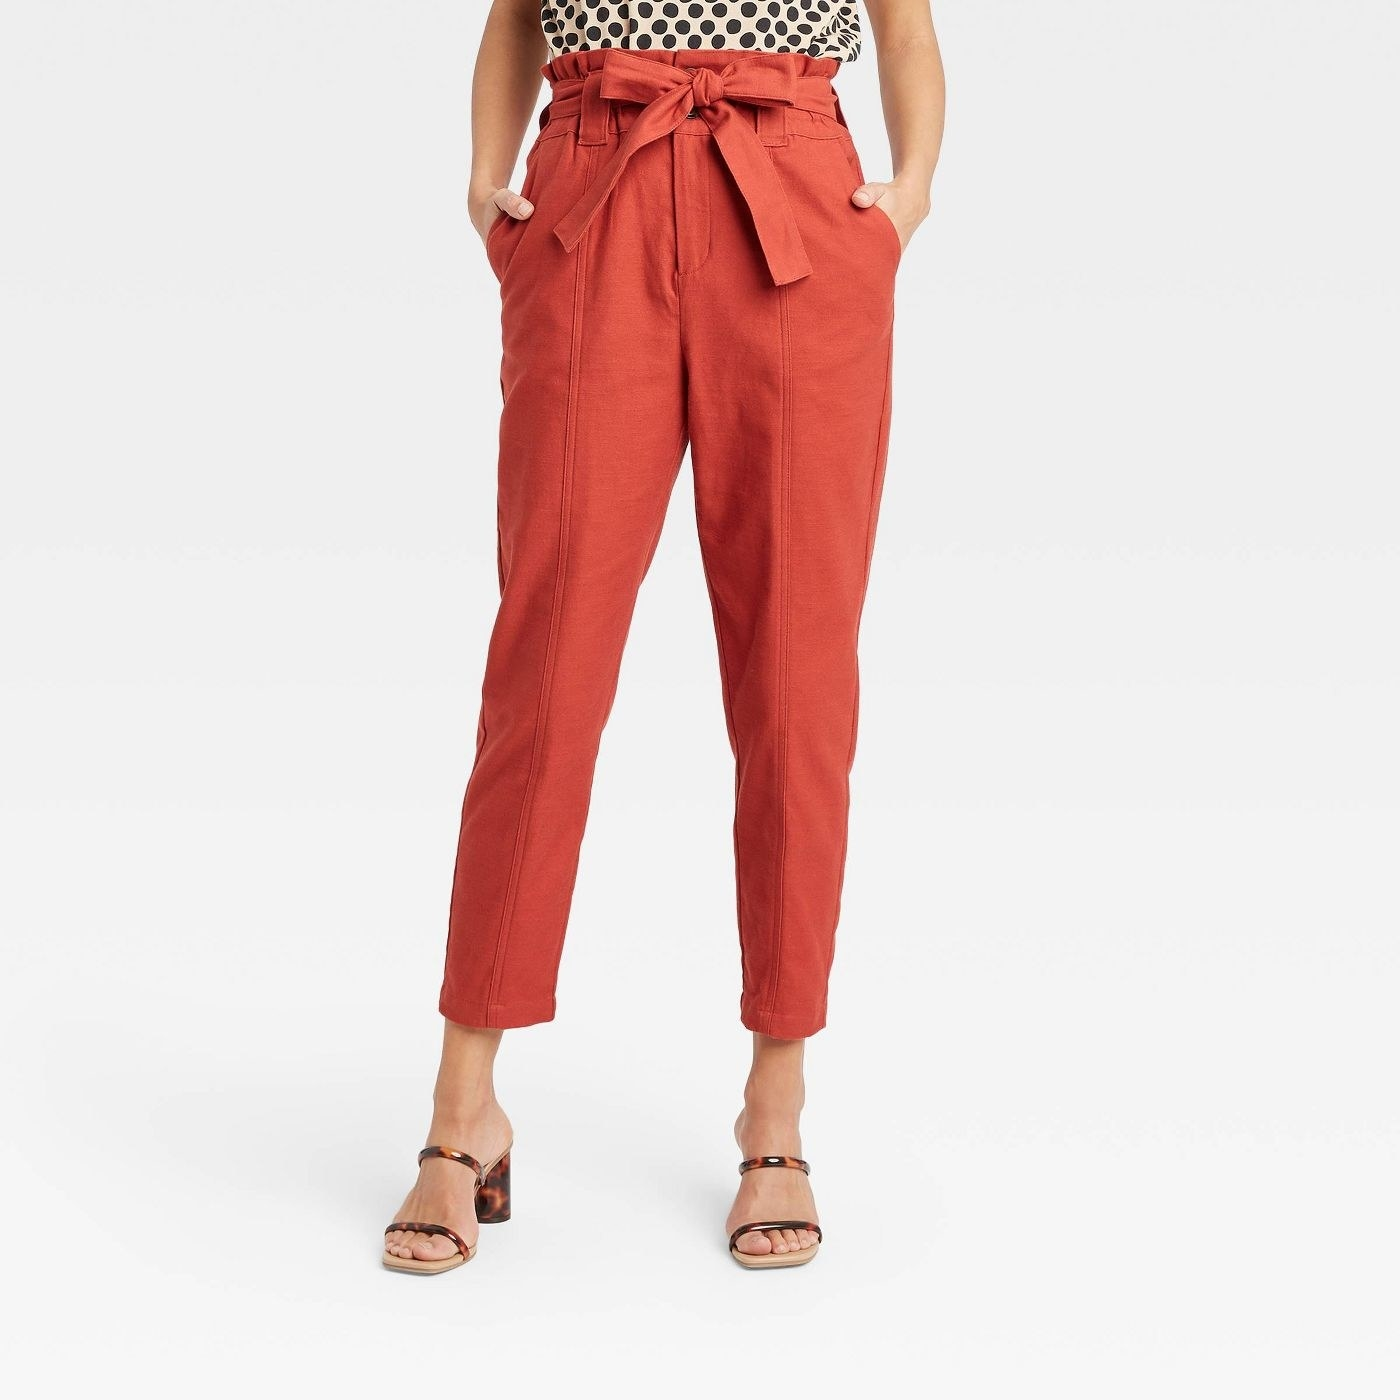 Model wearing orange high waisted pants with a tie waist, stops at the ankle